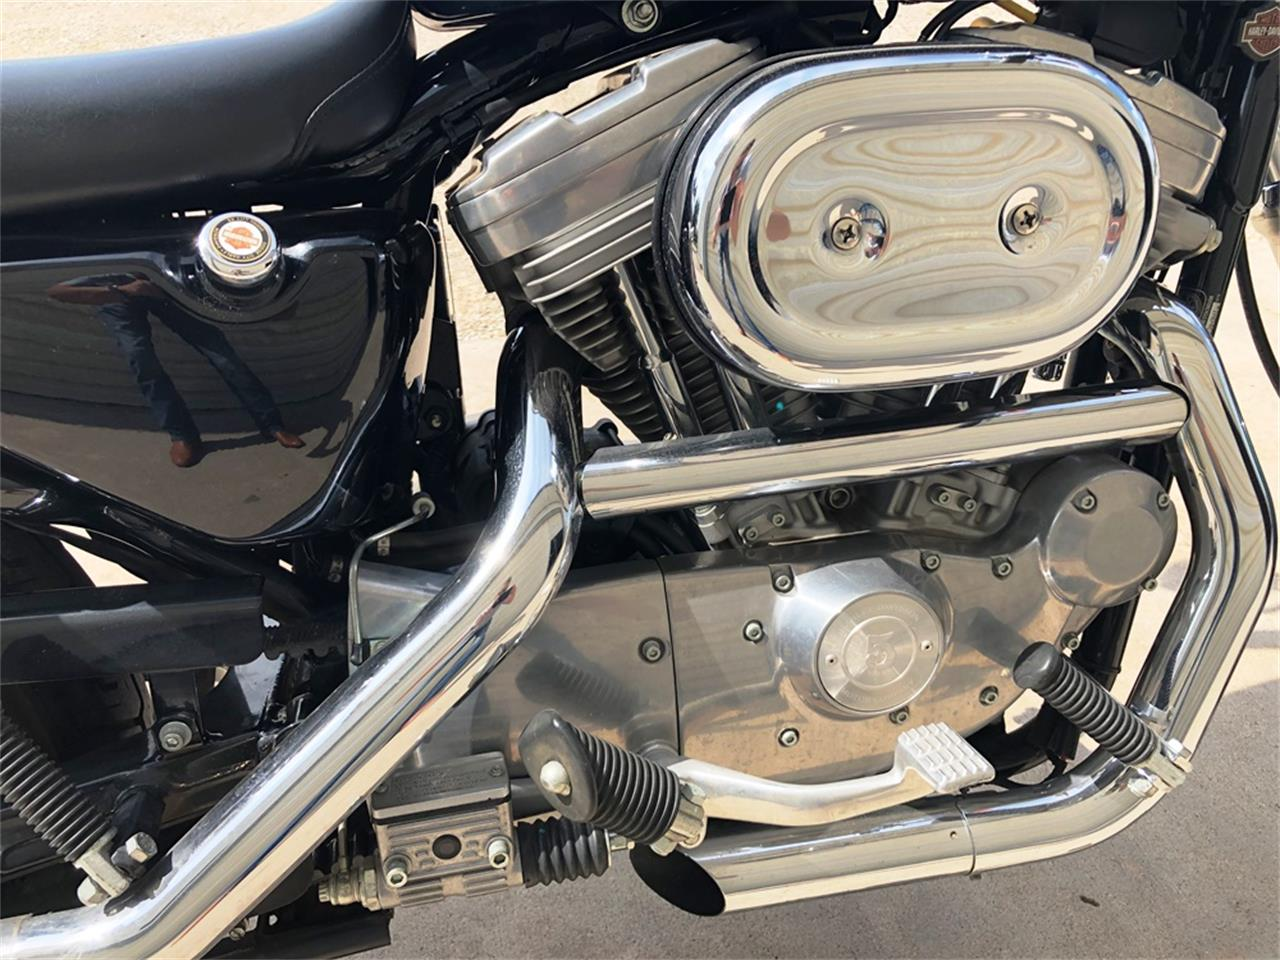 Large Picture of 2001 Harley-Davidson Sportster located in Great Bend Kansas - R1VQ